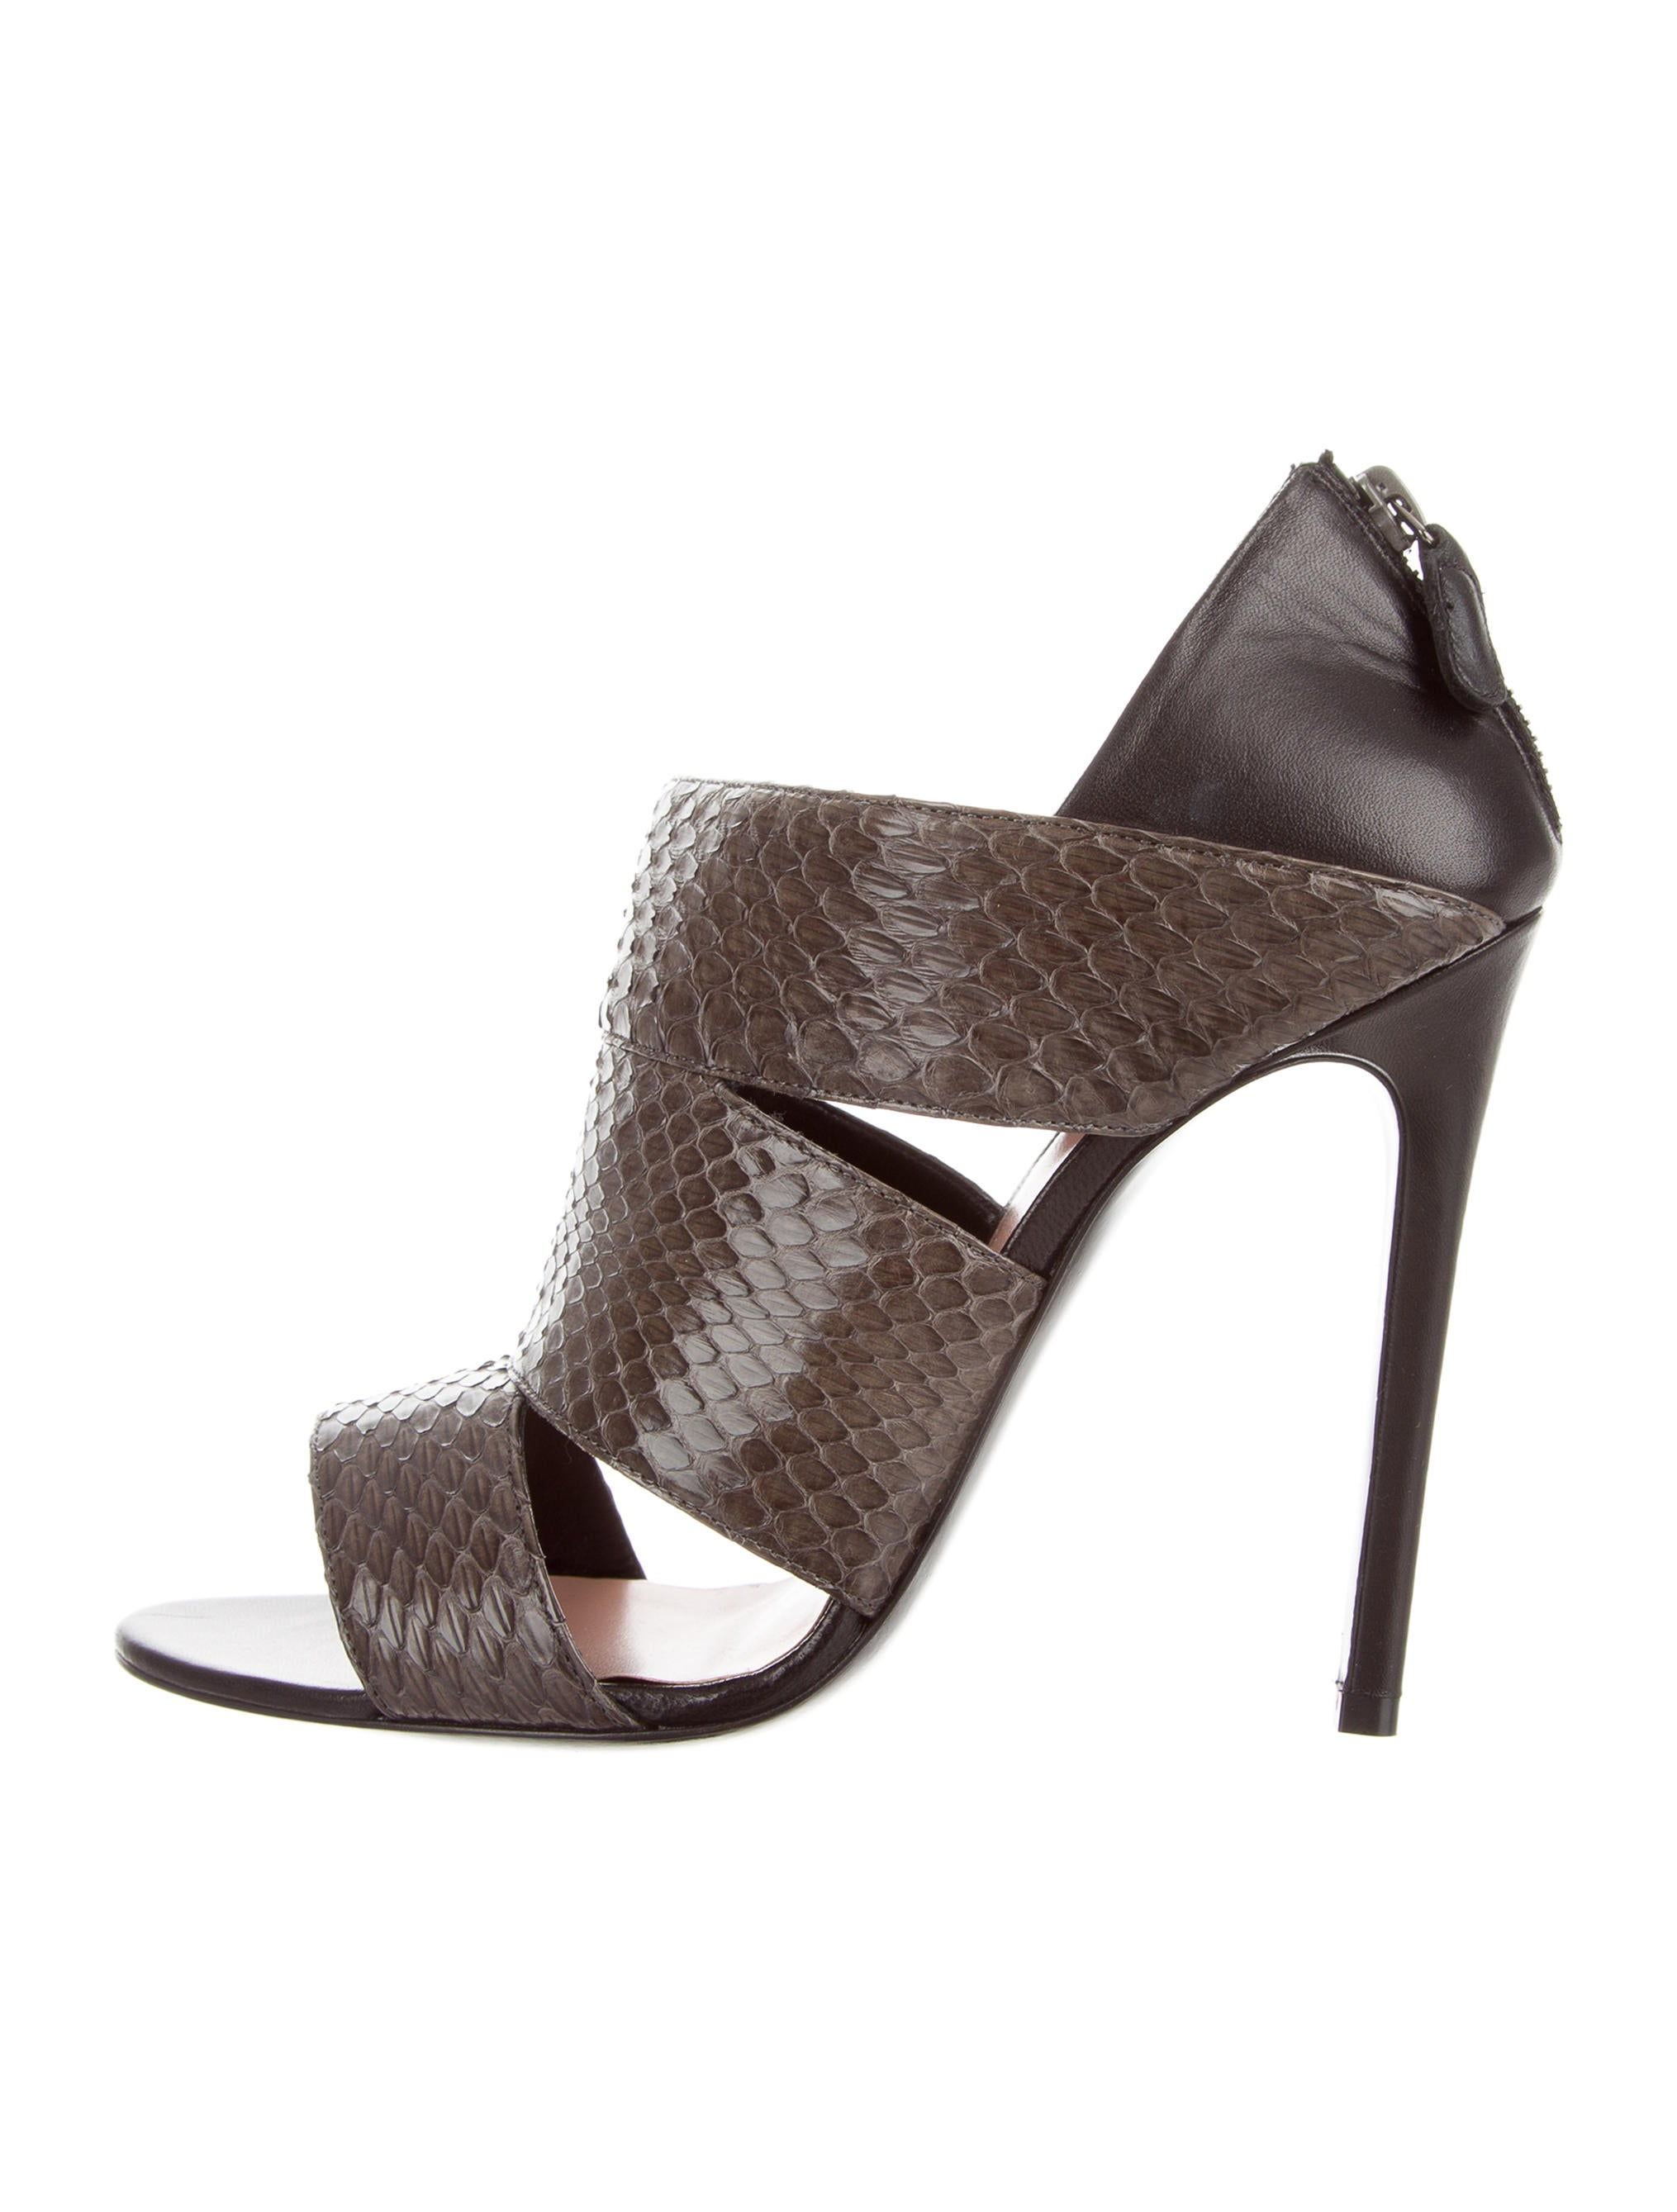 clearance cheap price sale low shipping fee Barbara Bui Python Pointed-Toe Pumps real online free shipping discount HStvxwJVY